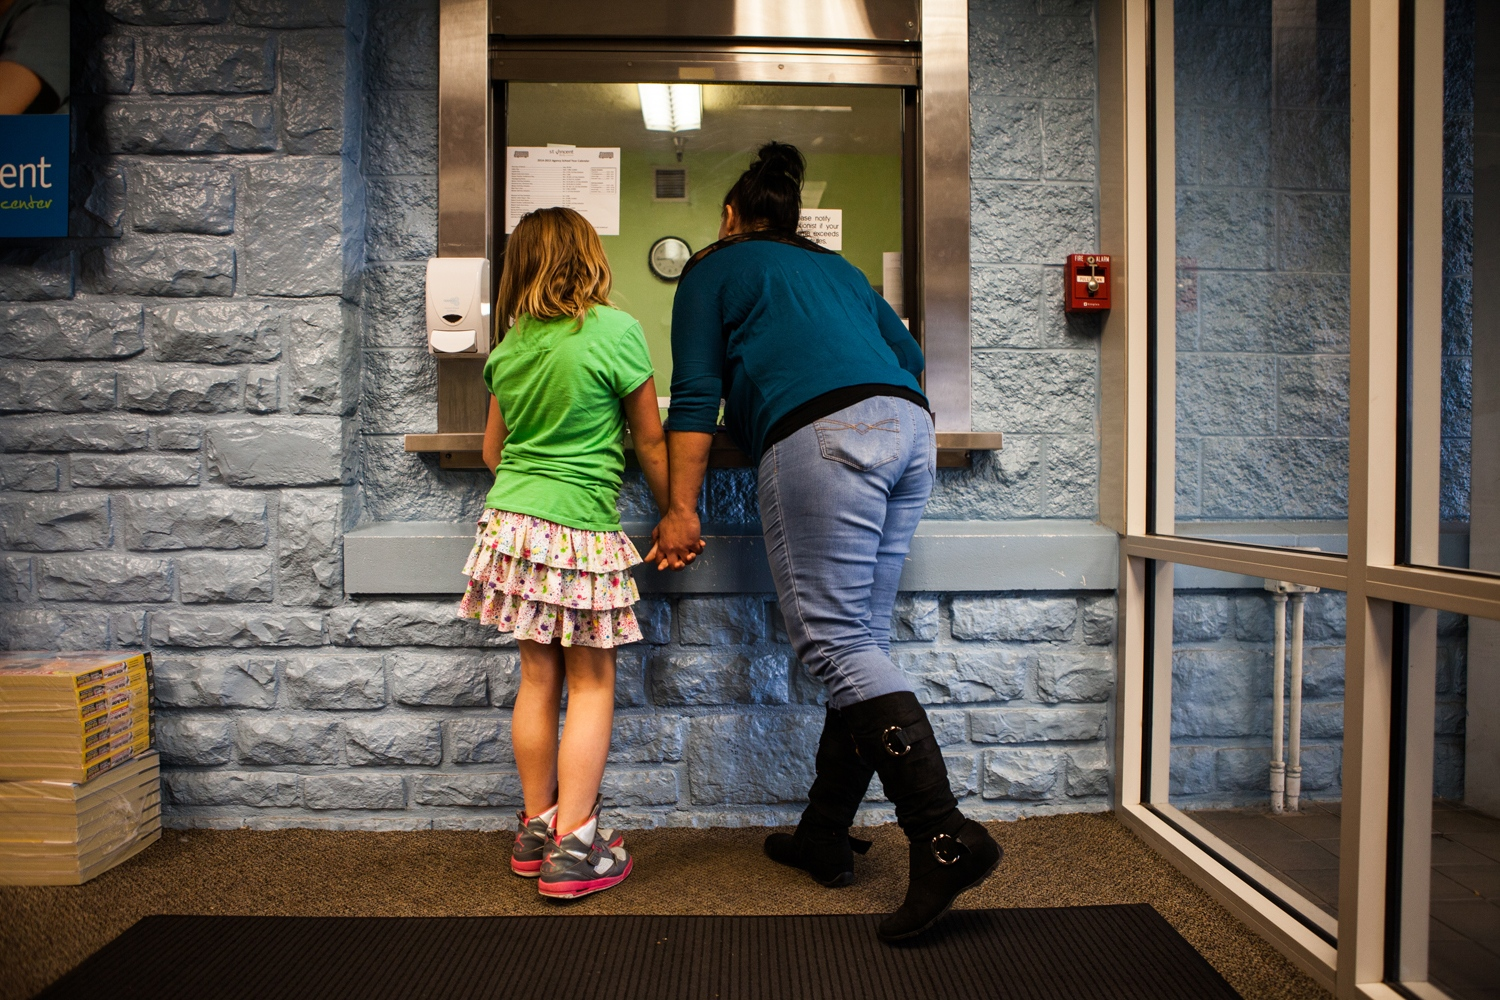 Melanie Dillon, 34, and Ariel Pace, 10, talk to the receptionist at Ariel's special education school in Columbus, Ohio. Ariel is bipolar like her mother, a sex trafficking survivor. While Melanie was battling with heroin addiction and being trafficked, Ariel often performed like a mother, Melanie said. She would undress her, clean her and put her to bed.